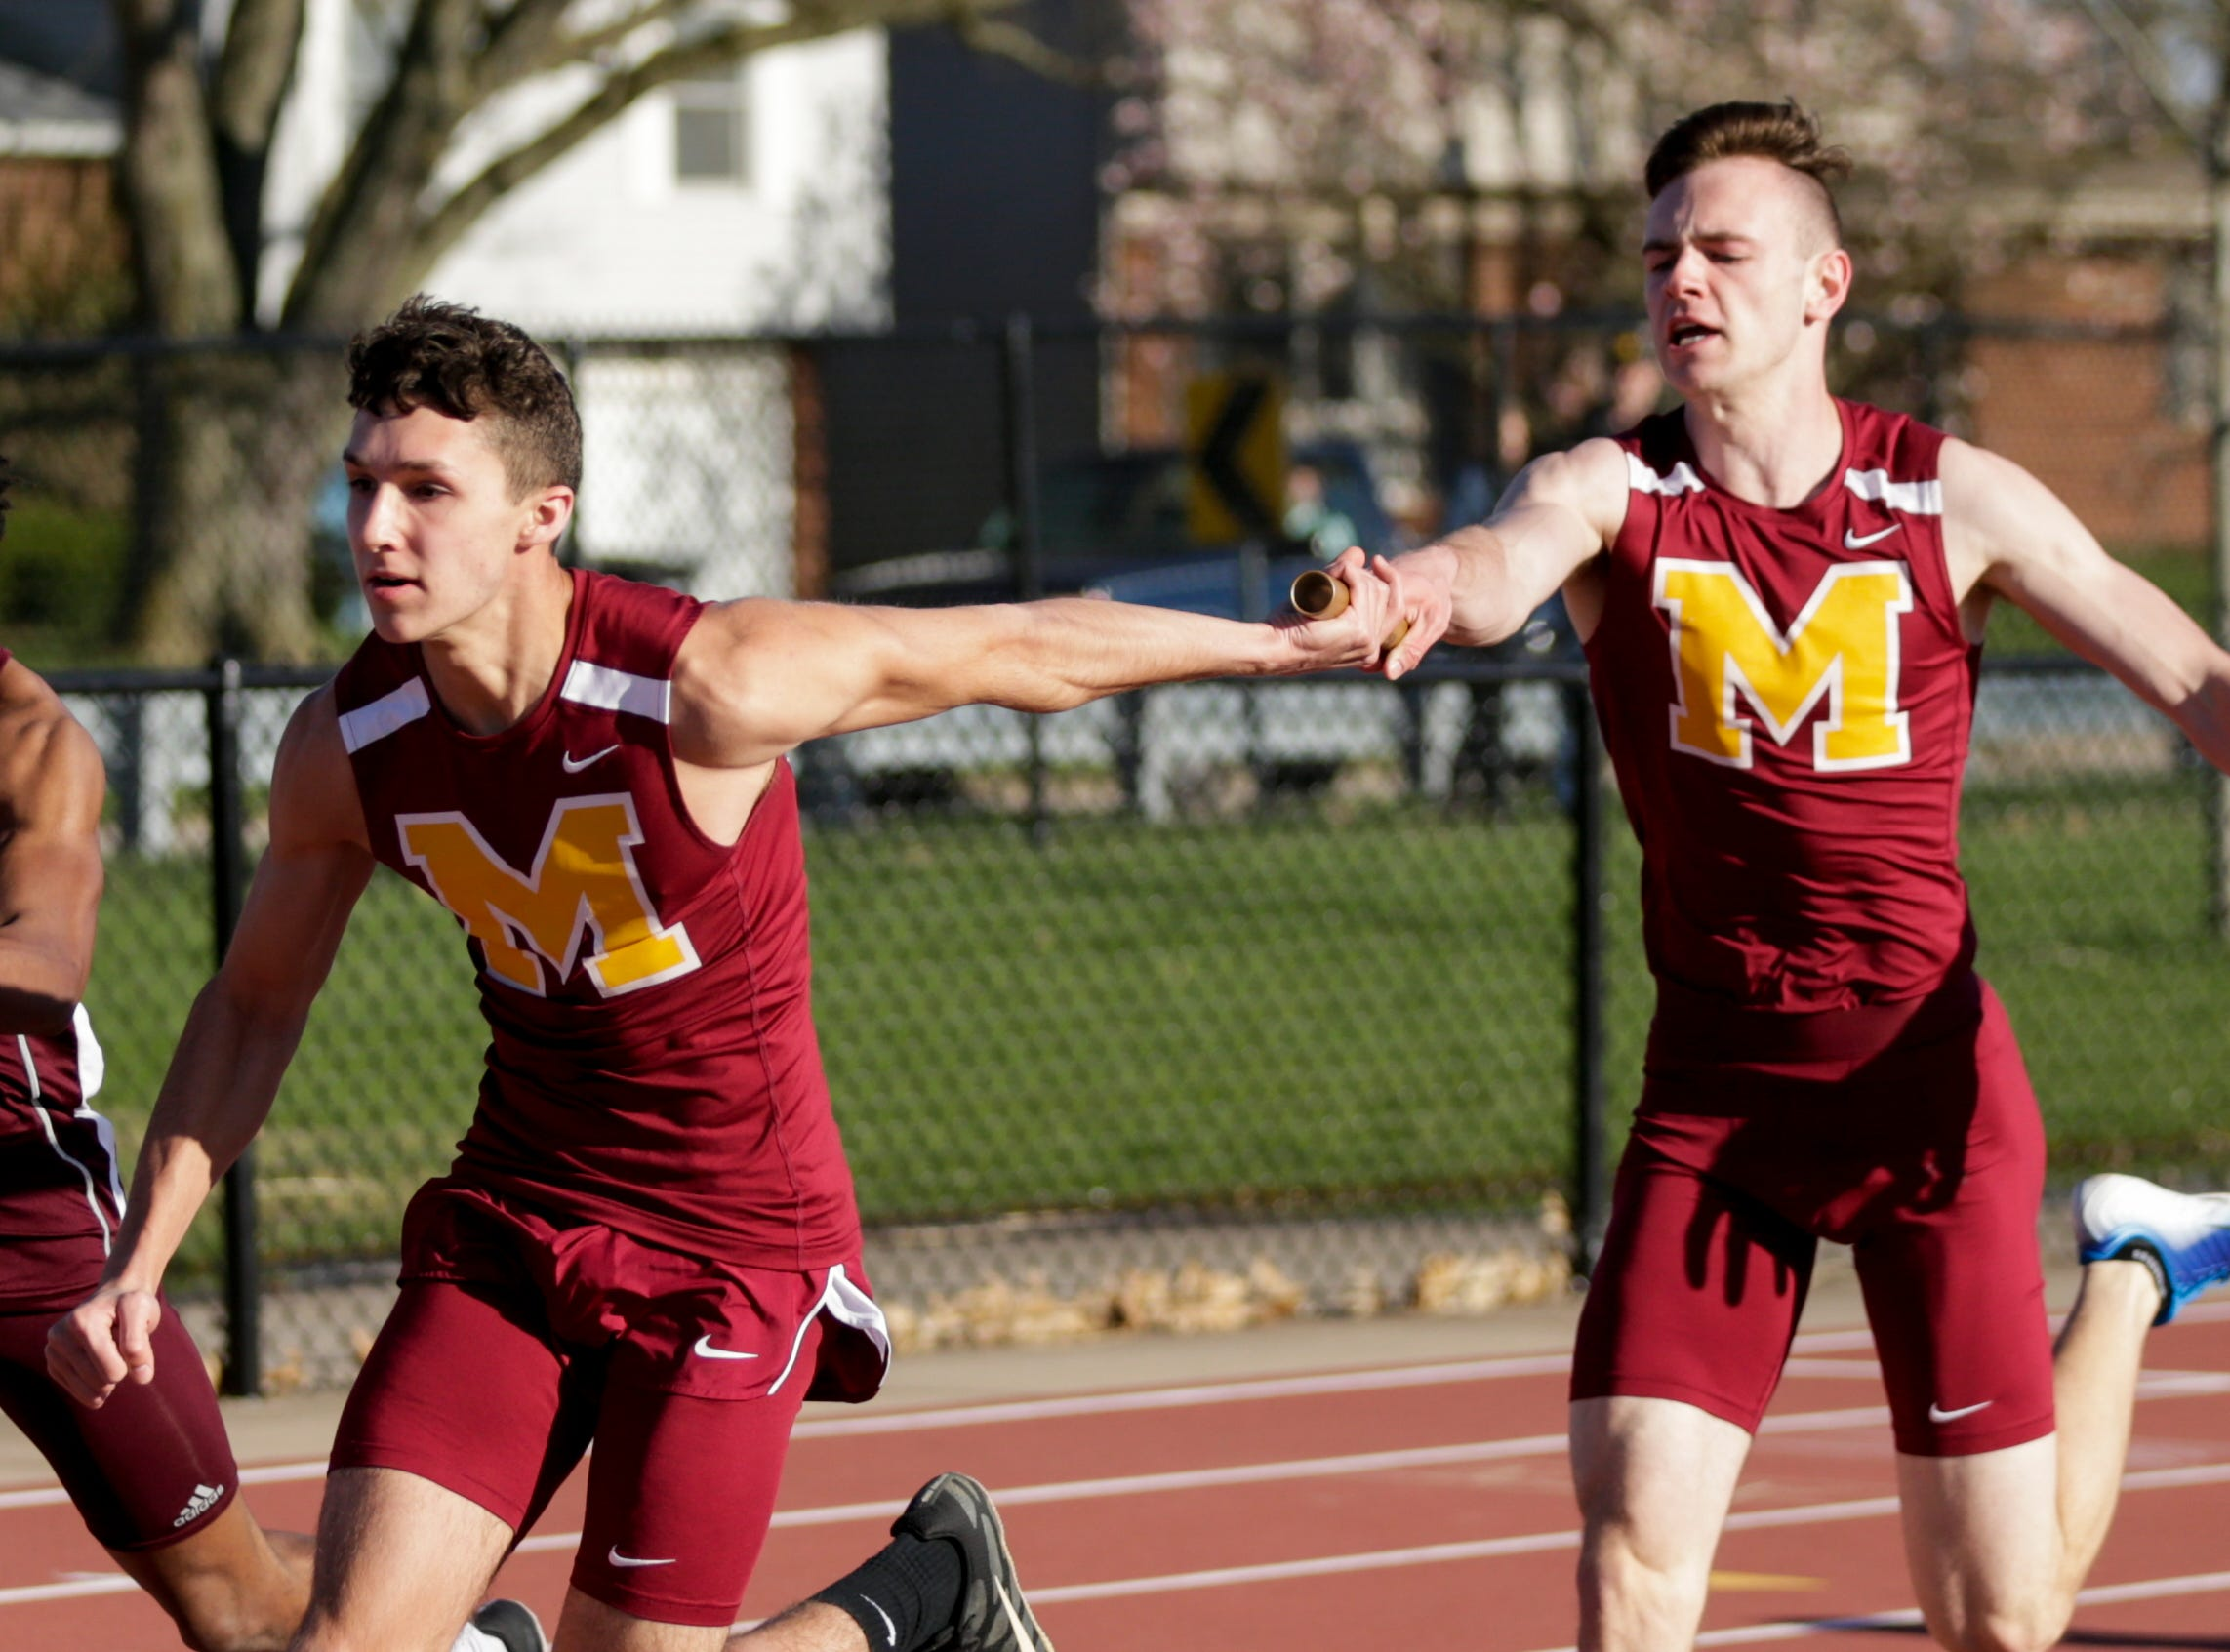 McCutcheon's Garrett Tucker hands off to Justin Crowe as they compete in the men's 4x100 meter relay during the 2019 Sprinters Showcase, Friday, April 12, 2019, at Lafayette Jeff High School in Lafayette.